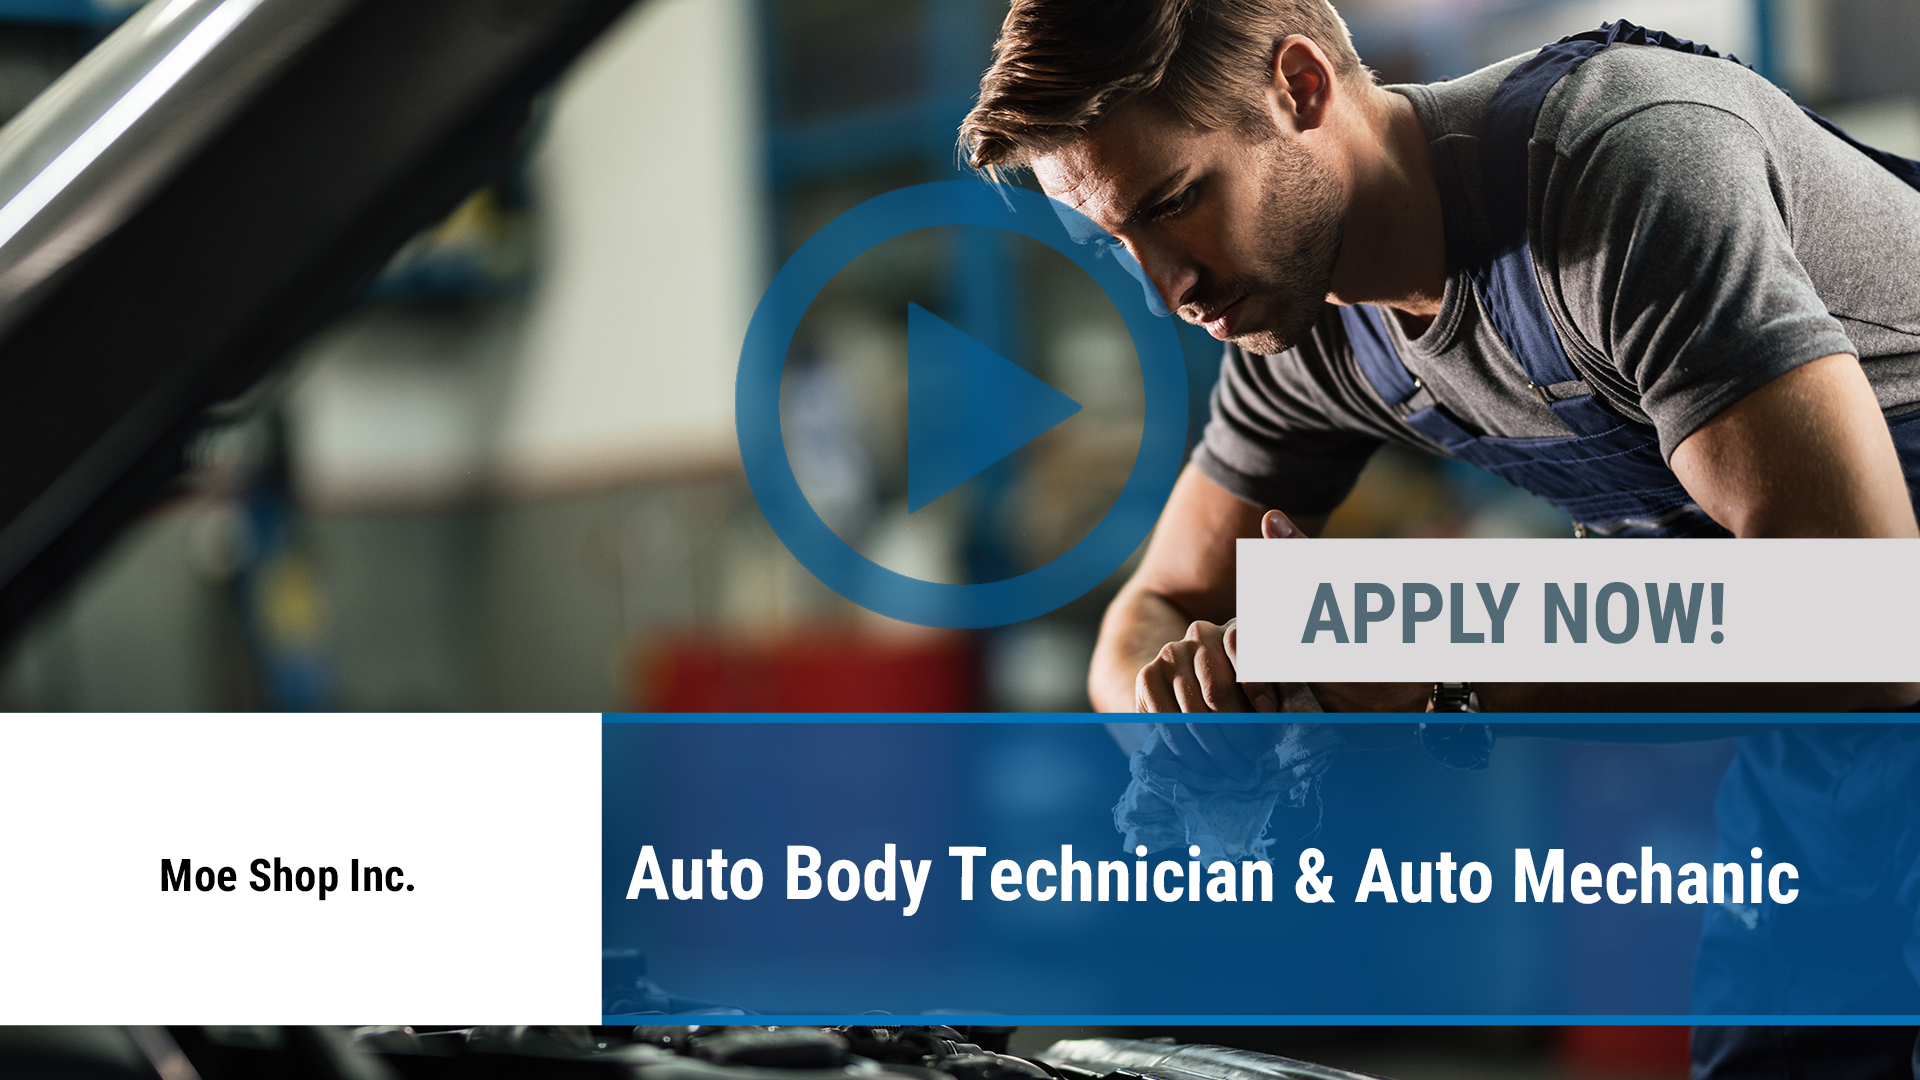 Watch our careers video for available job opening Auto Body Technician & Auto Mechanic in Dallas, TX